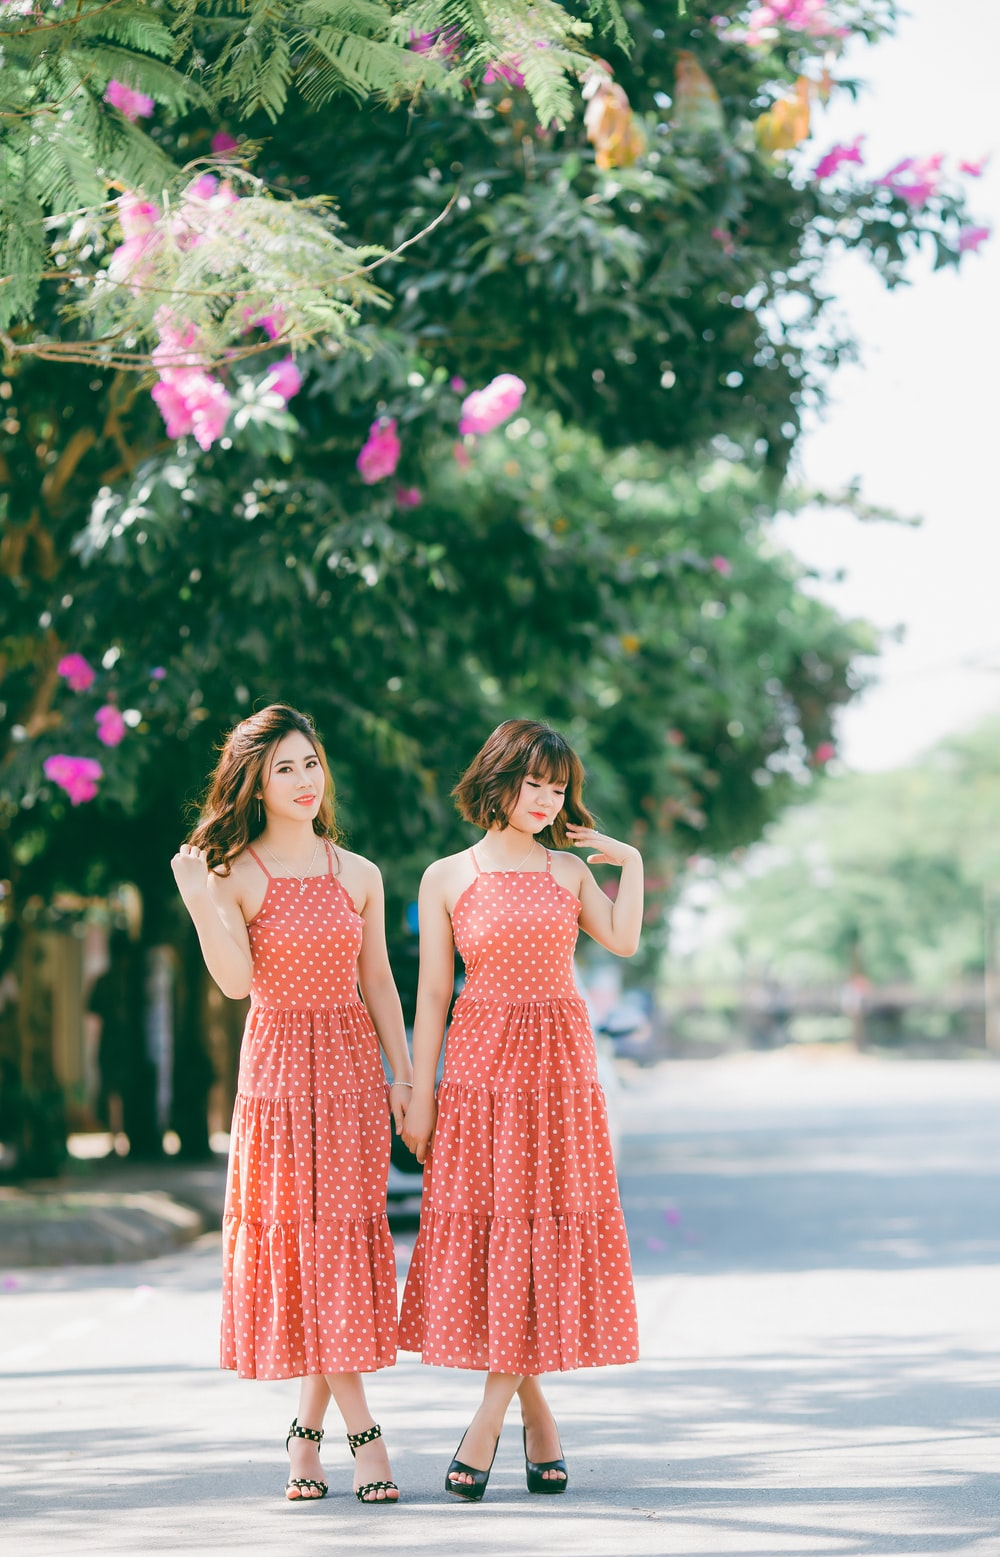 two women wearing red-and-white polka dot dresses standing on road near pink petaled flowers during daytime